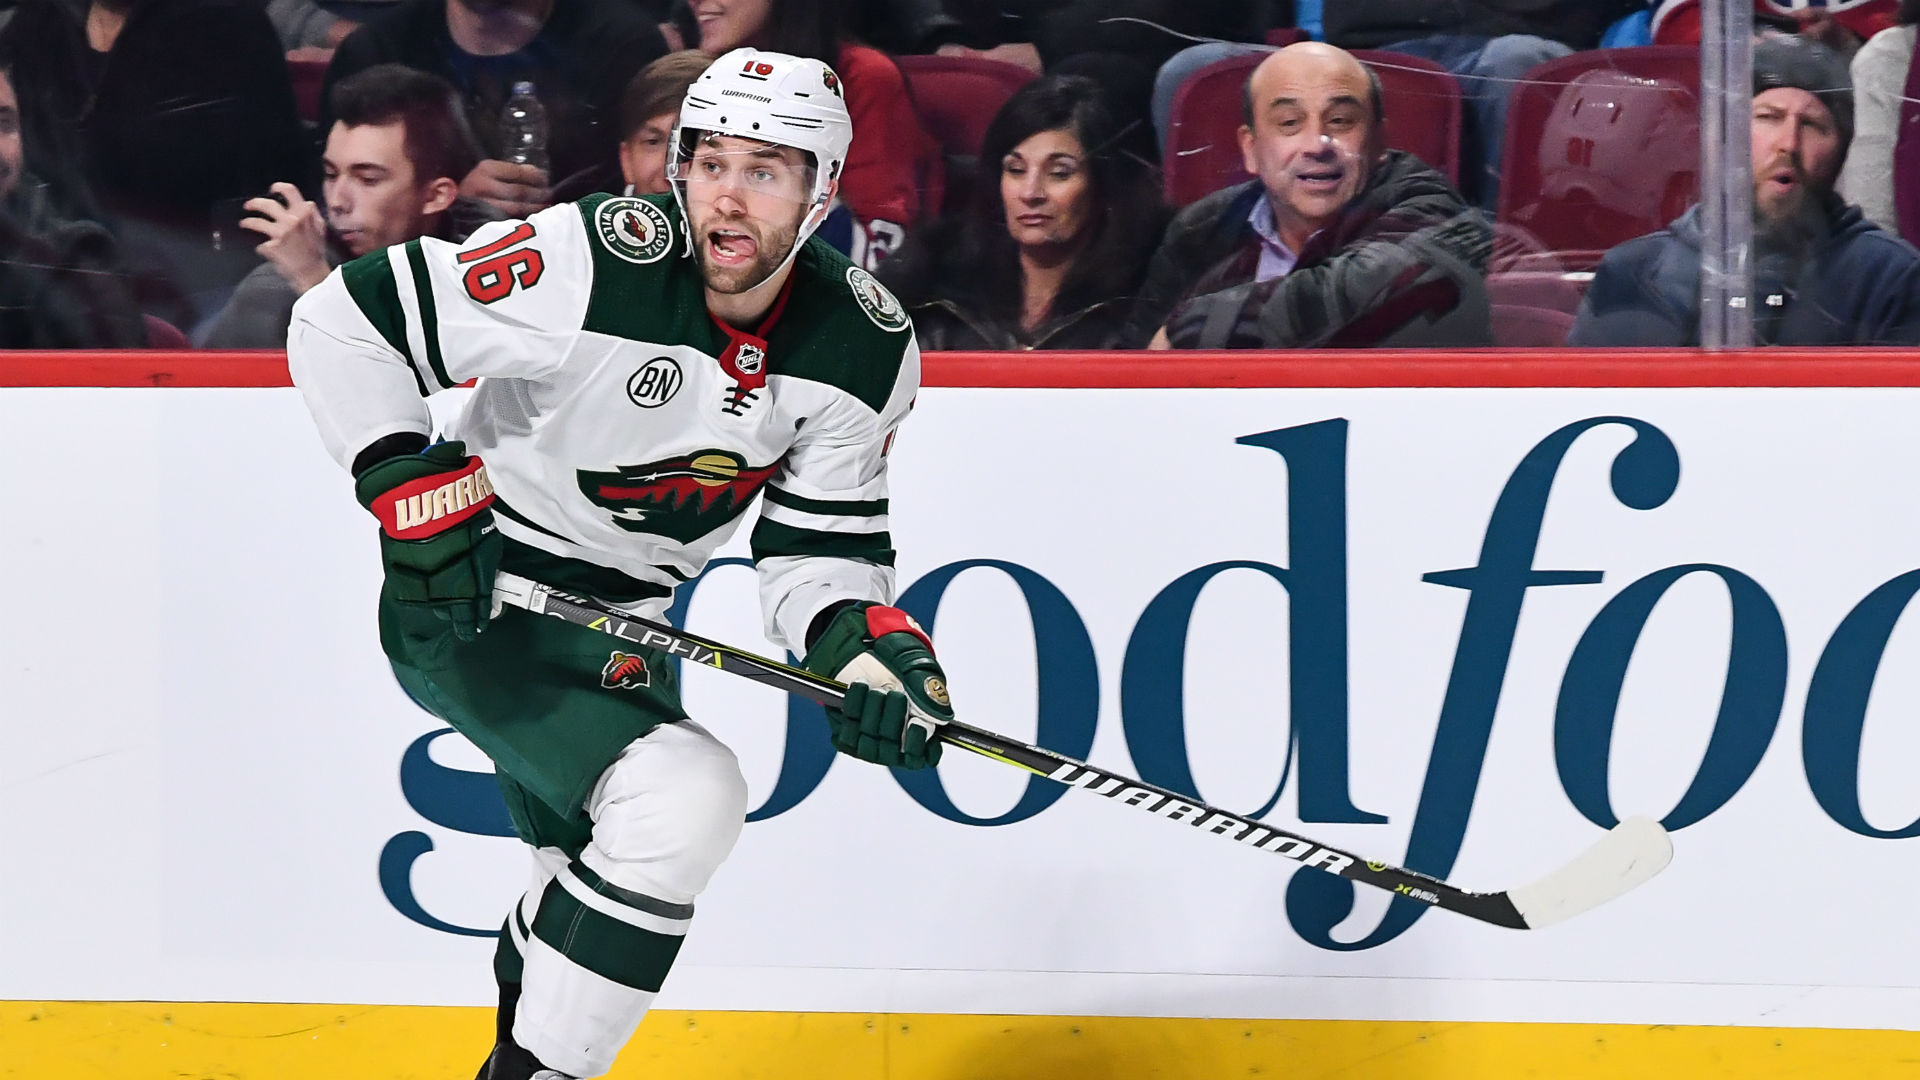 Nhl Rumor Roundup Jason Zucker S Days With Wild Numbered After